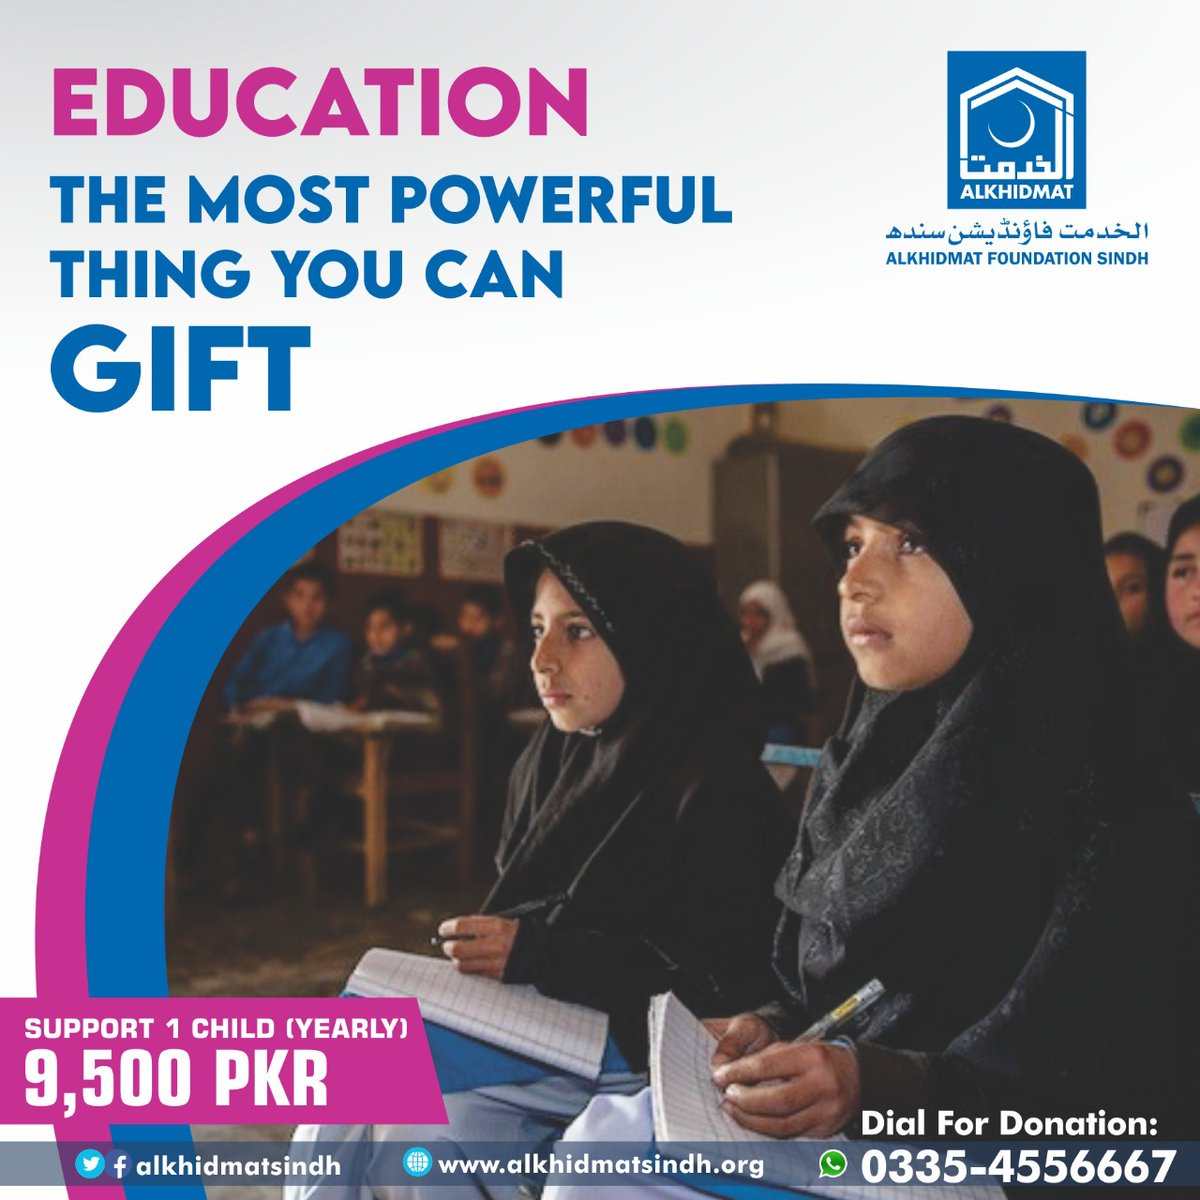 Education is the most powerful thing you can Gift! Become a donor - send donations to Alkhidmat Foundation Sindh Dial: 0335 4556667 Meezan Bank: 01880101058666 #support #AlkhidmatFoundation #sindh #charity #education #winter #warm #winterpackage #donate #Pakistan